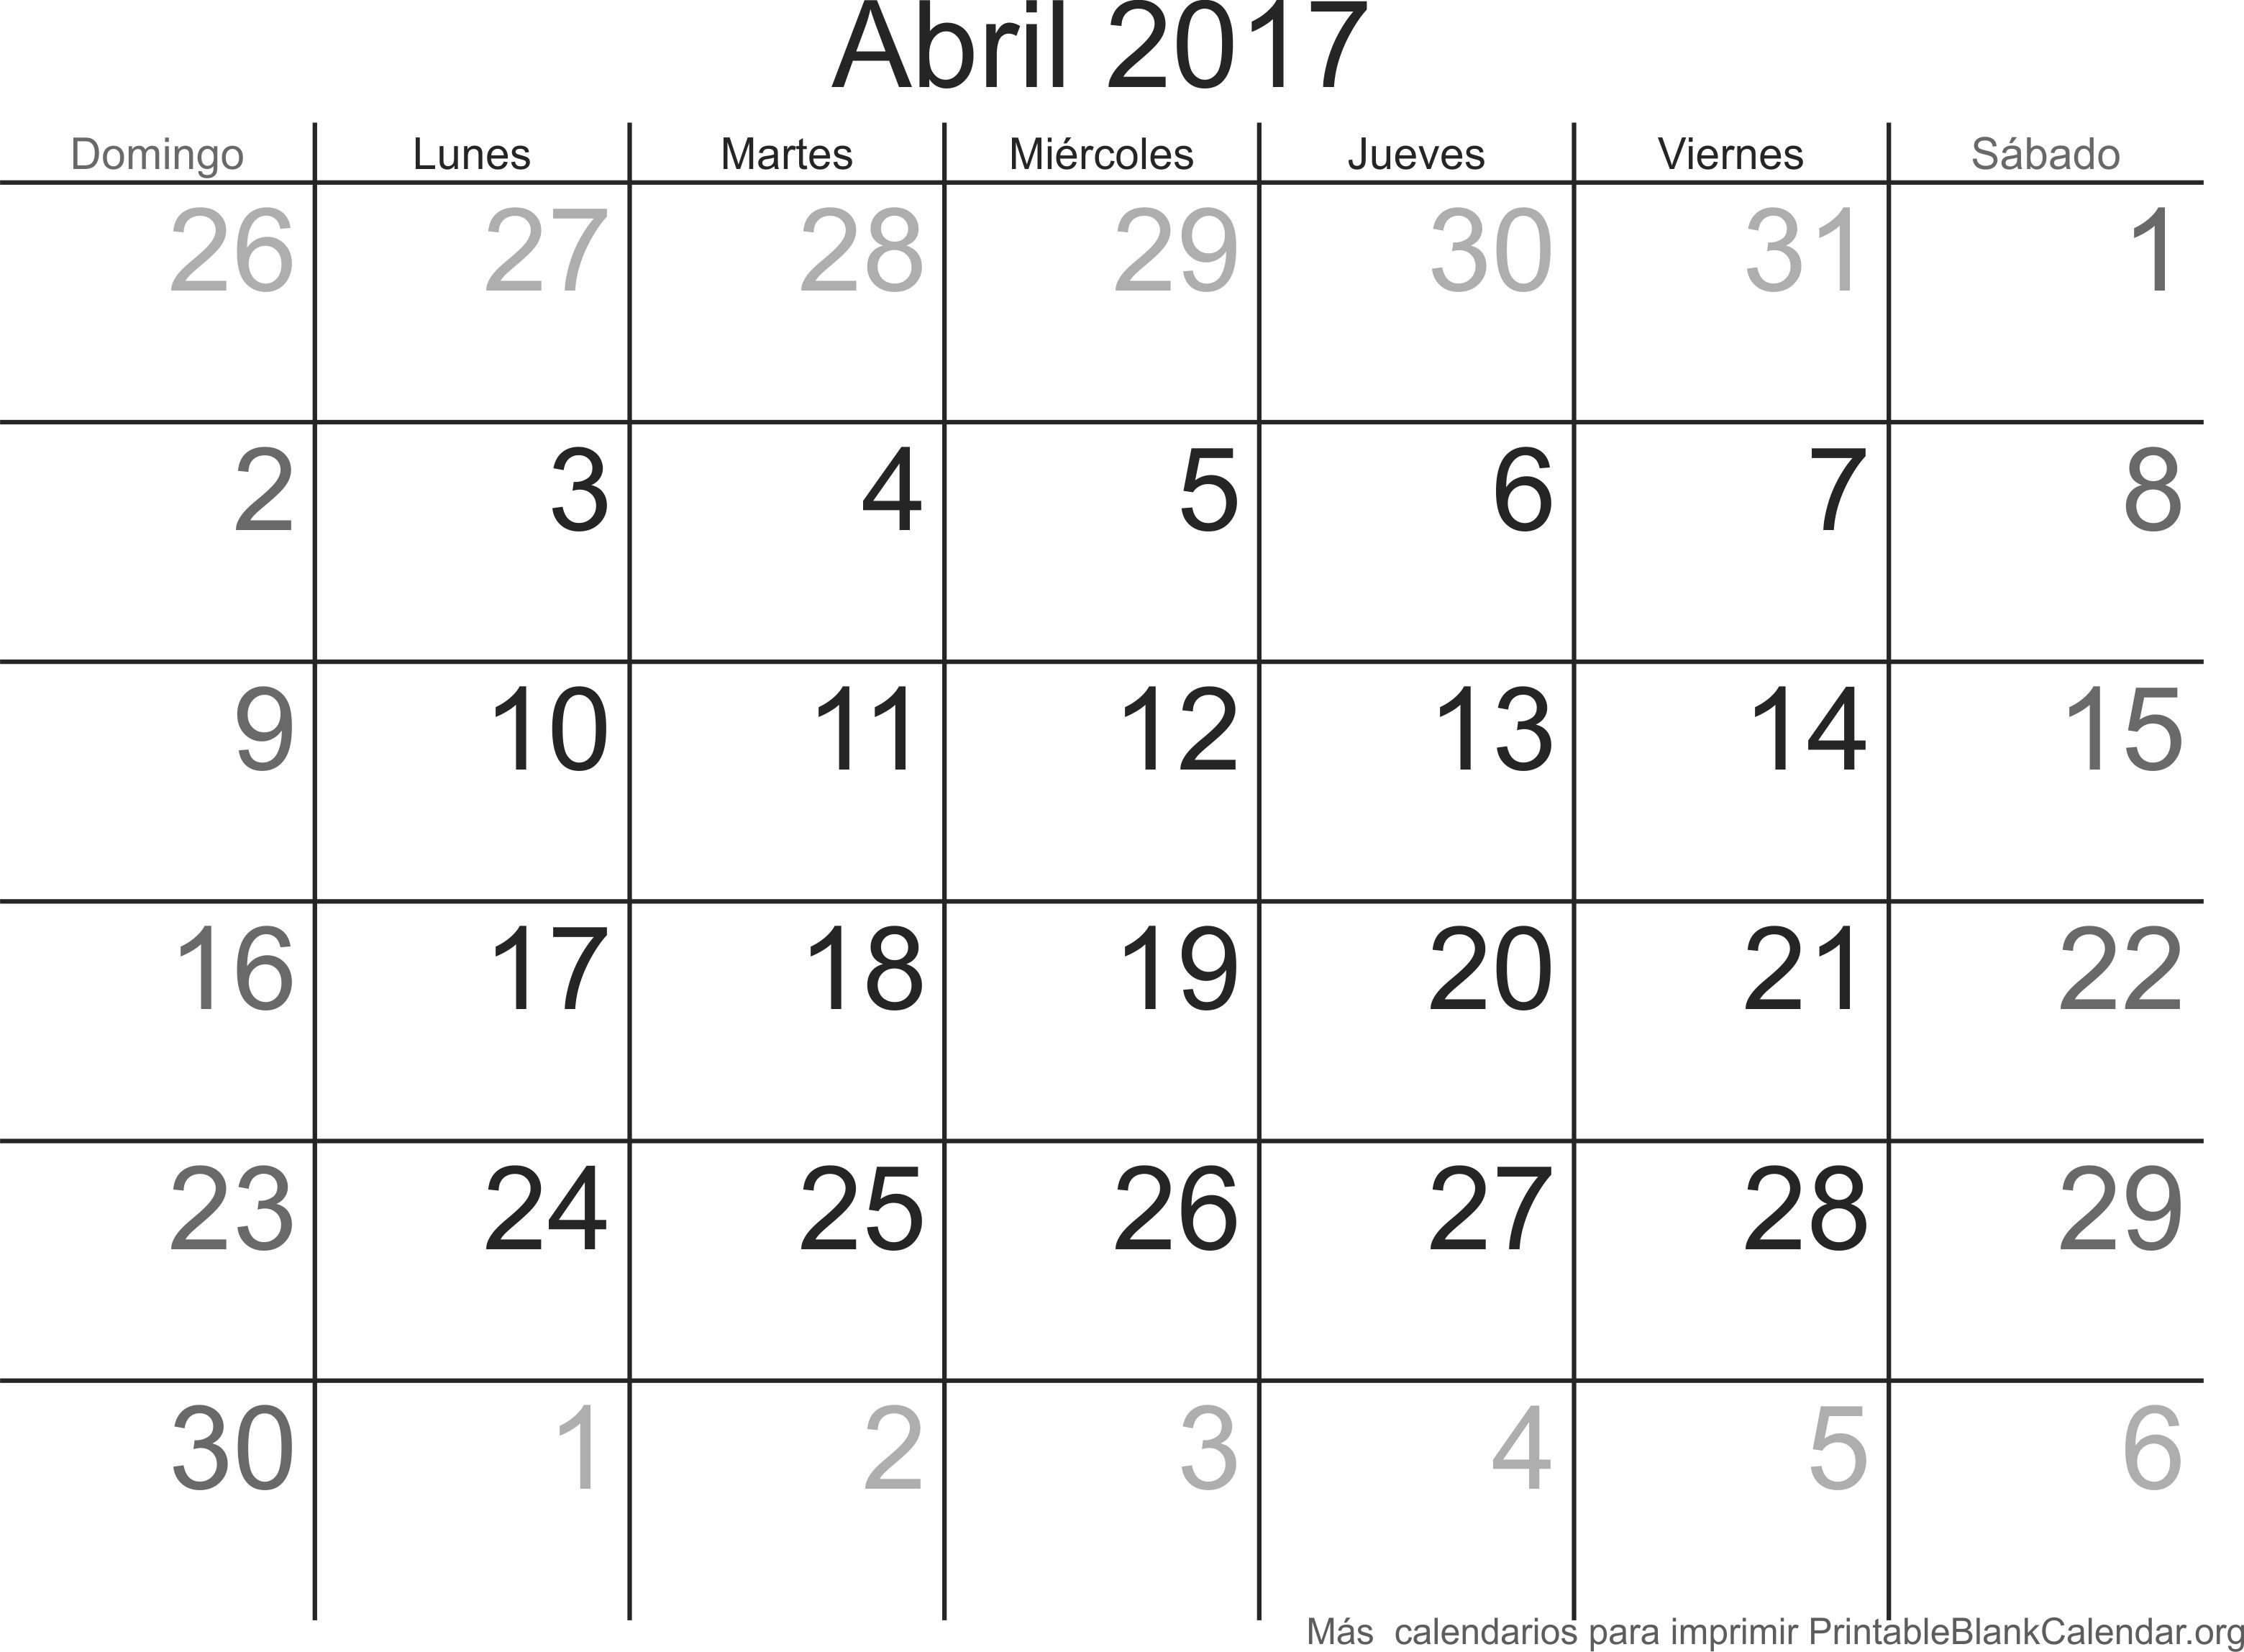 Calendario Abril Para Imprimir Actual Calendario Para Imprimir Abr 2017 Calendarios Para Imprimir Of Calendario Abril Para Imprimir Más Actual 15 Imágenes De Calendario Laboral 2018 De Madrid Para Imprimir Y